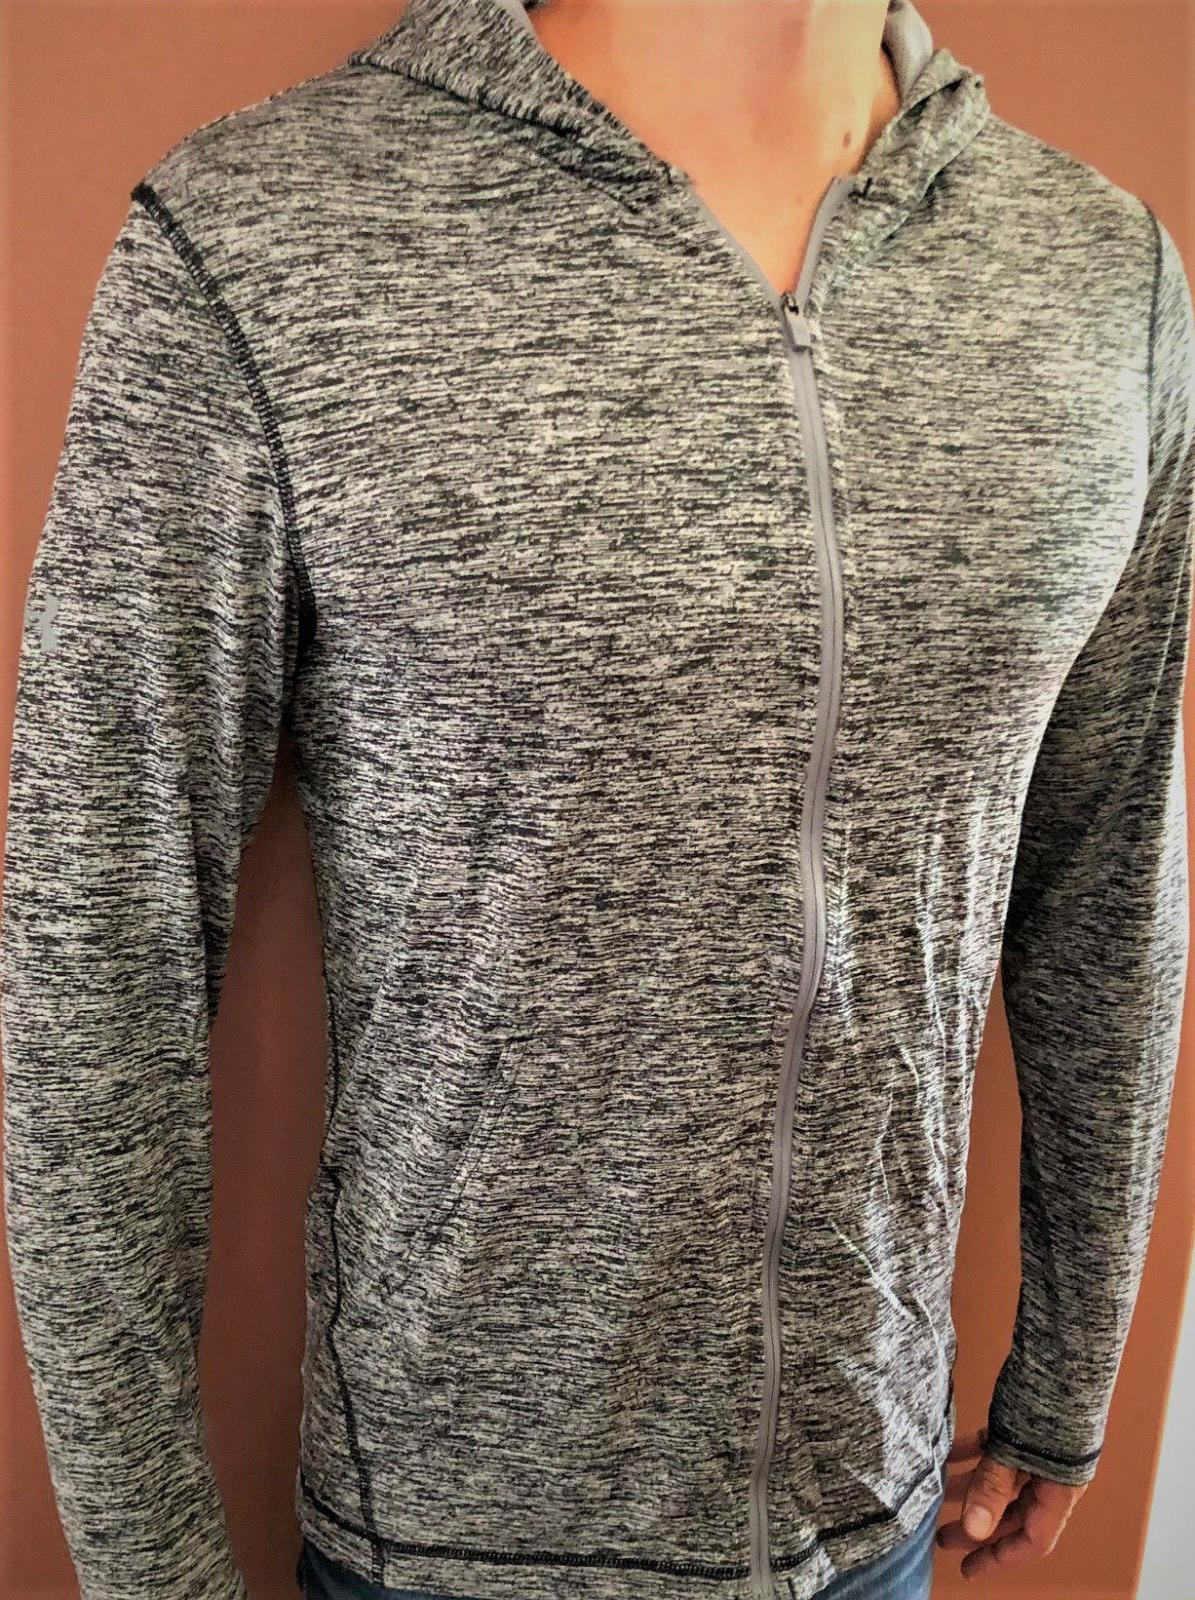 new with tags mens gym workout lightweight